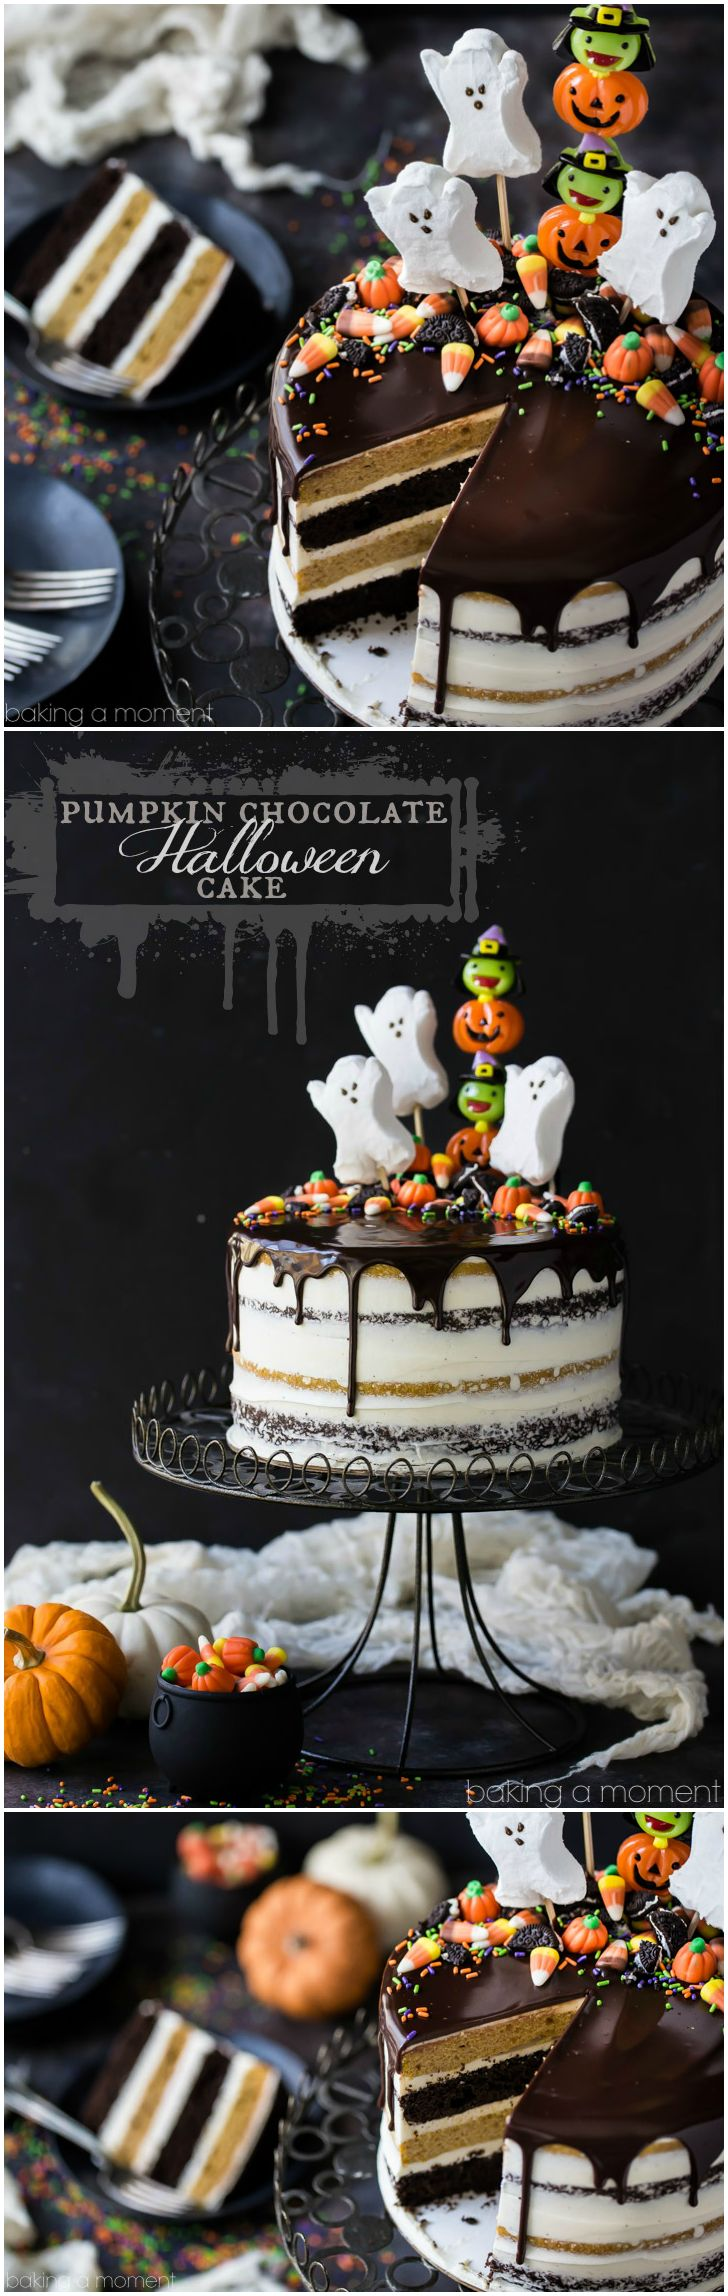 pumpkin chocolate halloween cake - Halloween Decorated Cakes